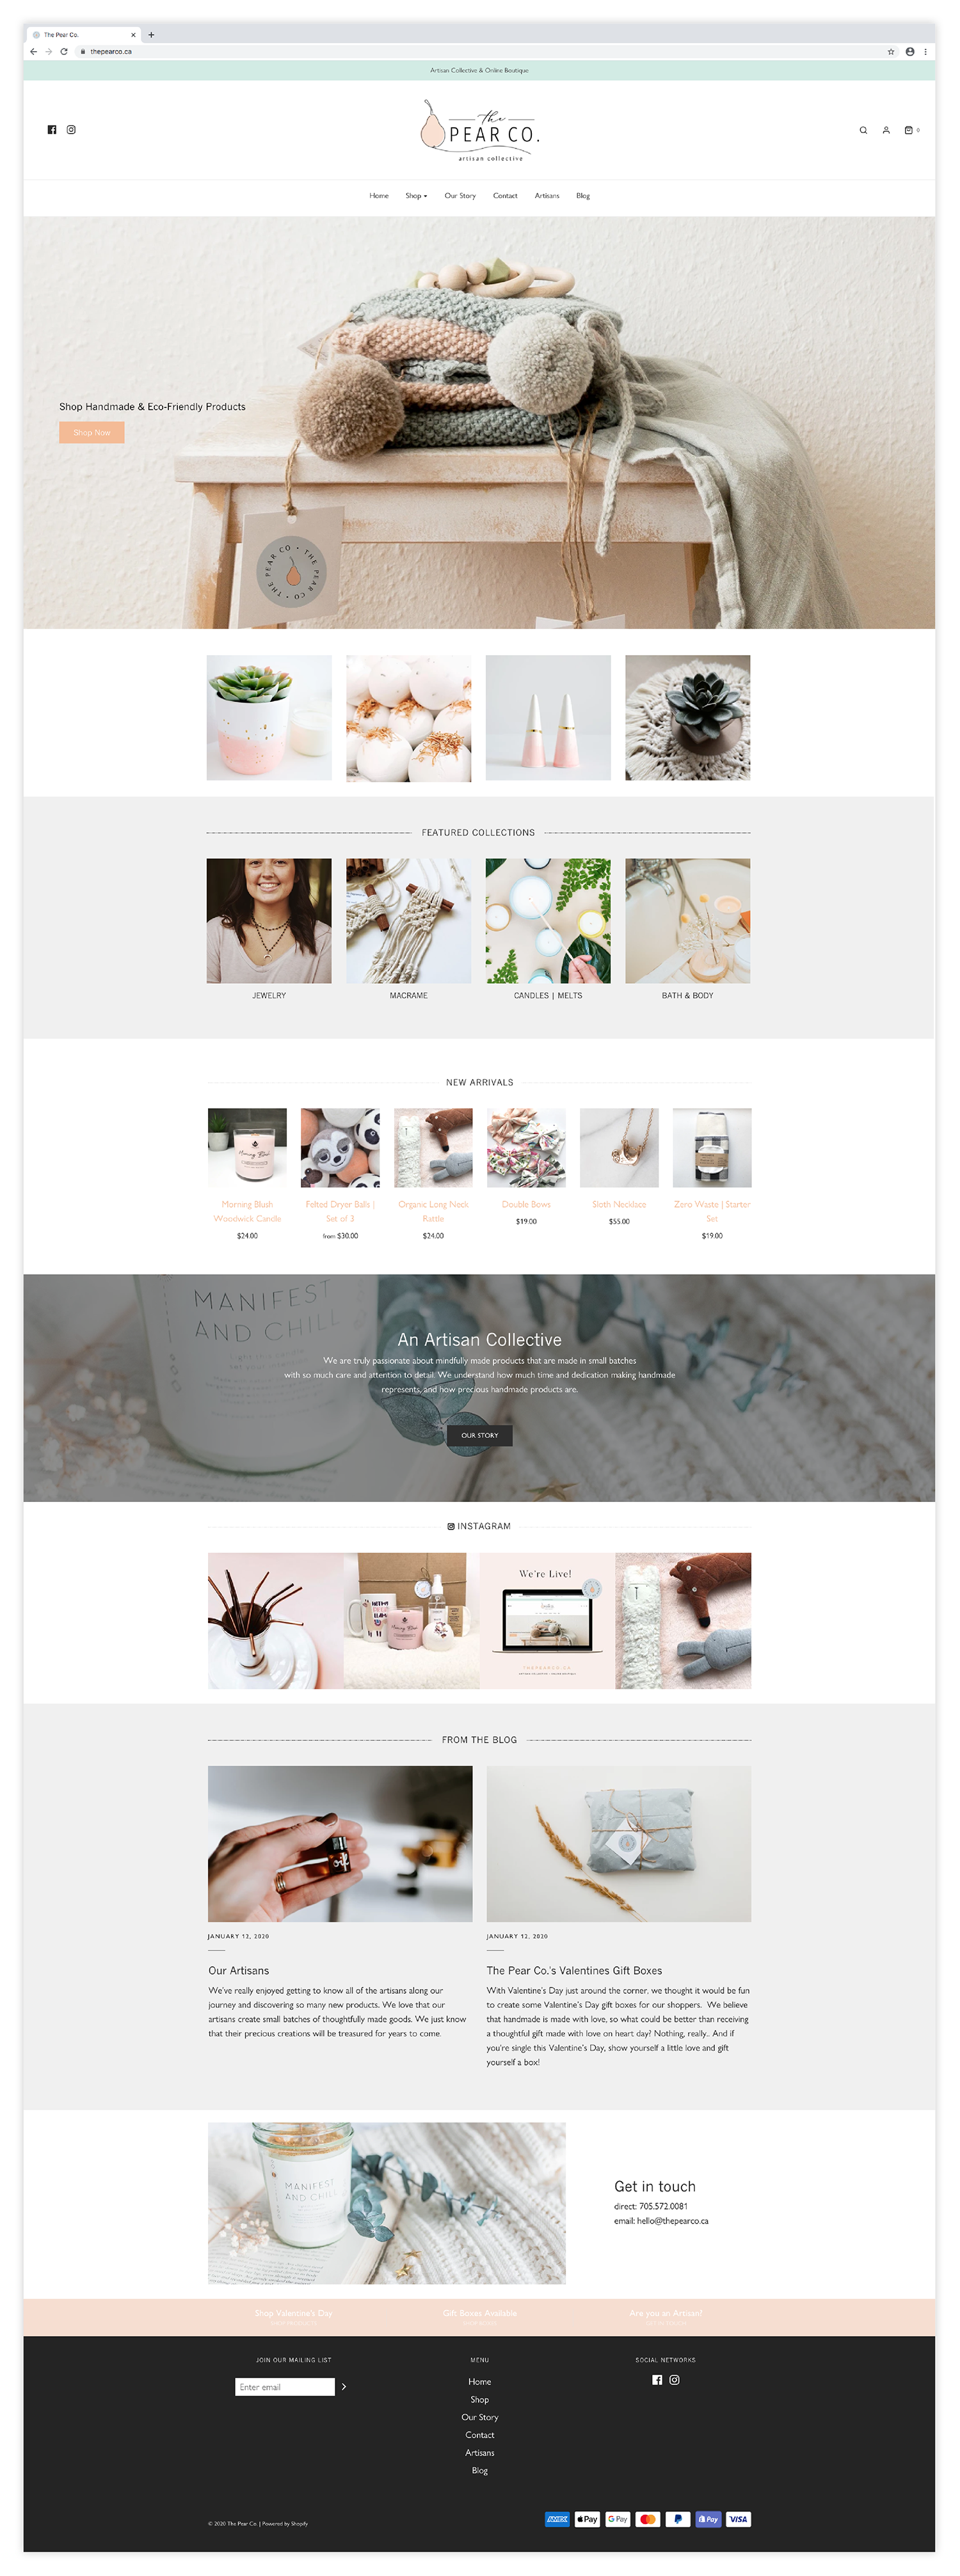 ThePearCo_site